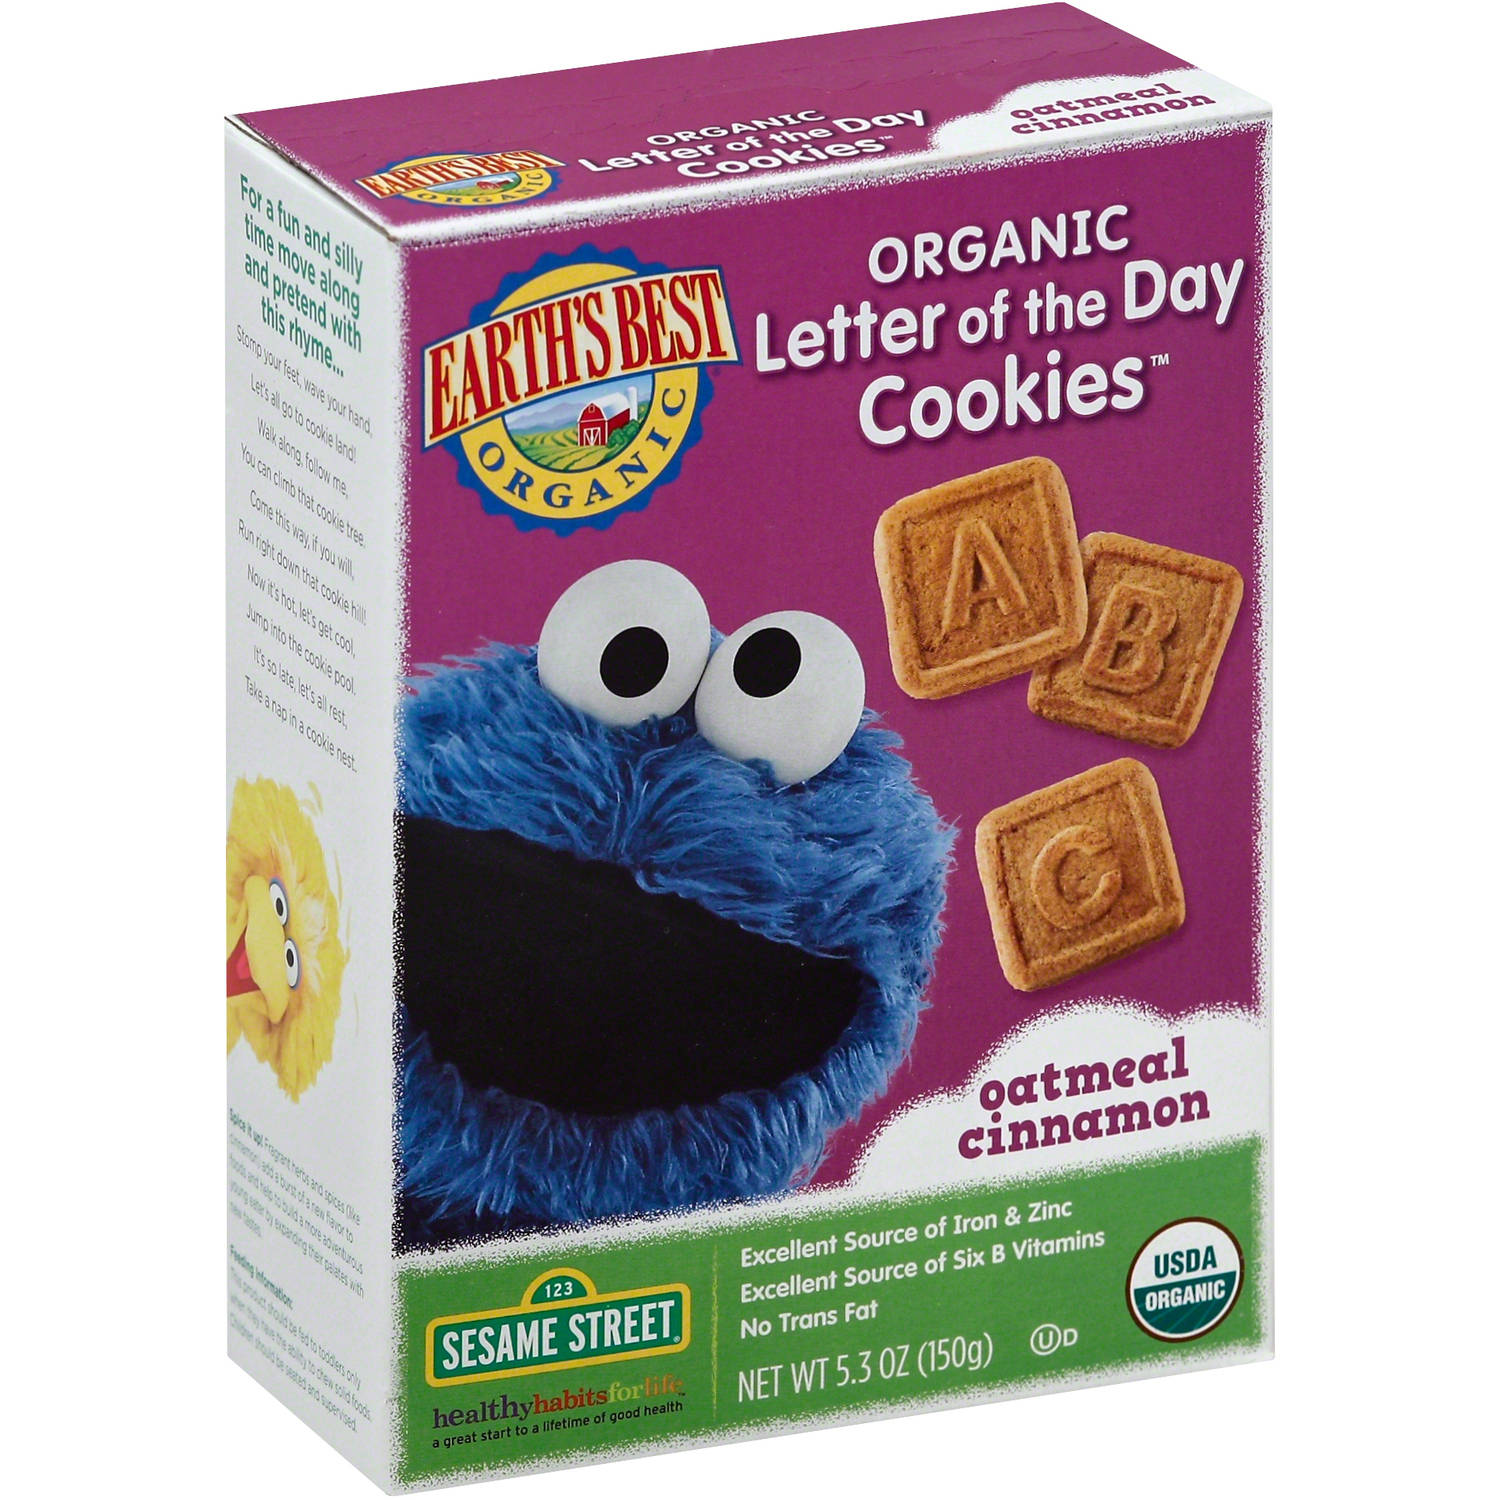 Earth's Best Organic Letter of the Day Oatmeal Cinnamon Cookies, 5.3 oz